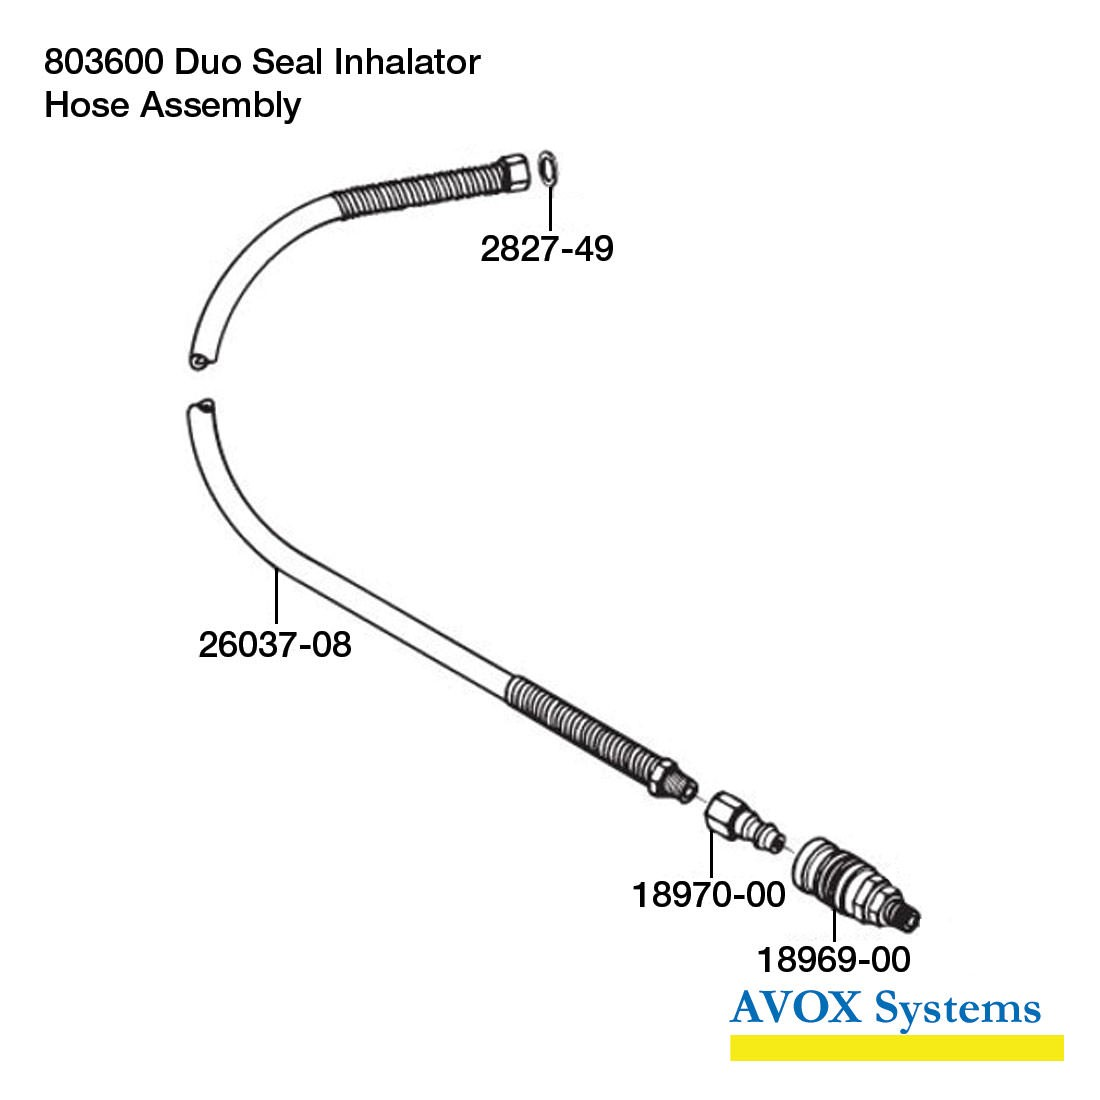 Avox 803600-04 Duo Seal Inhalator without First Stage Regulator Assembly with Microphone Assembly - Hose Assembly